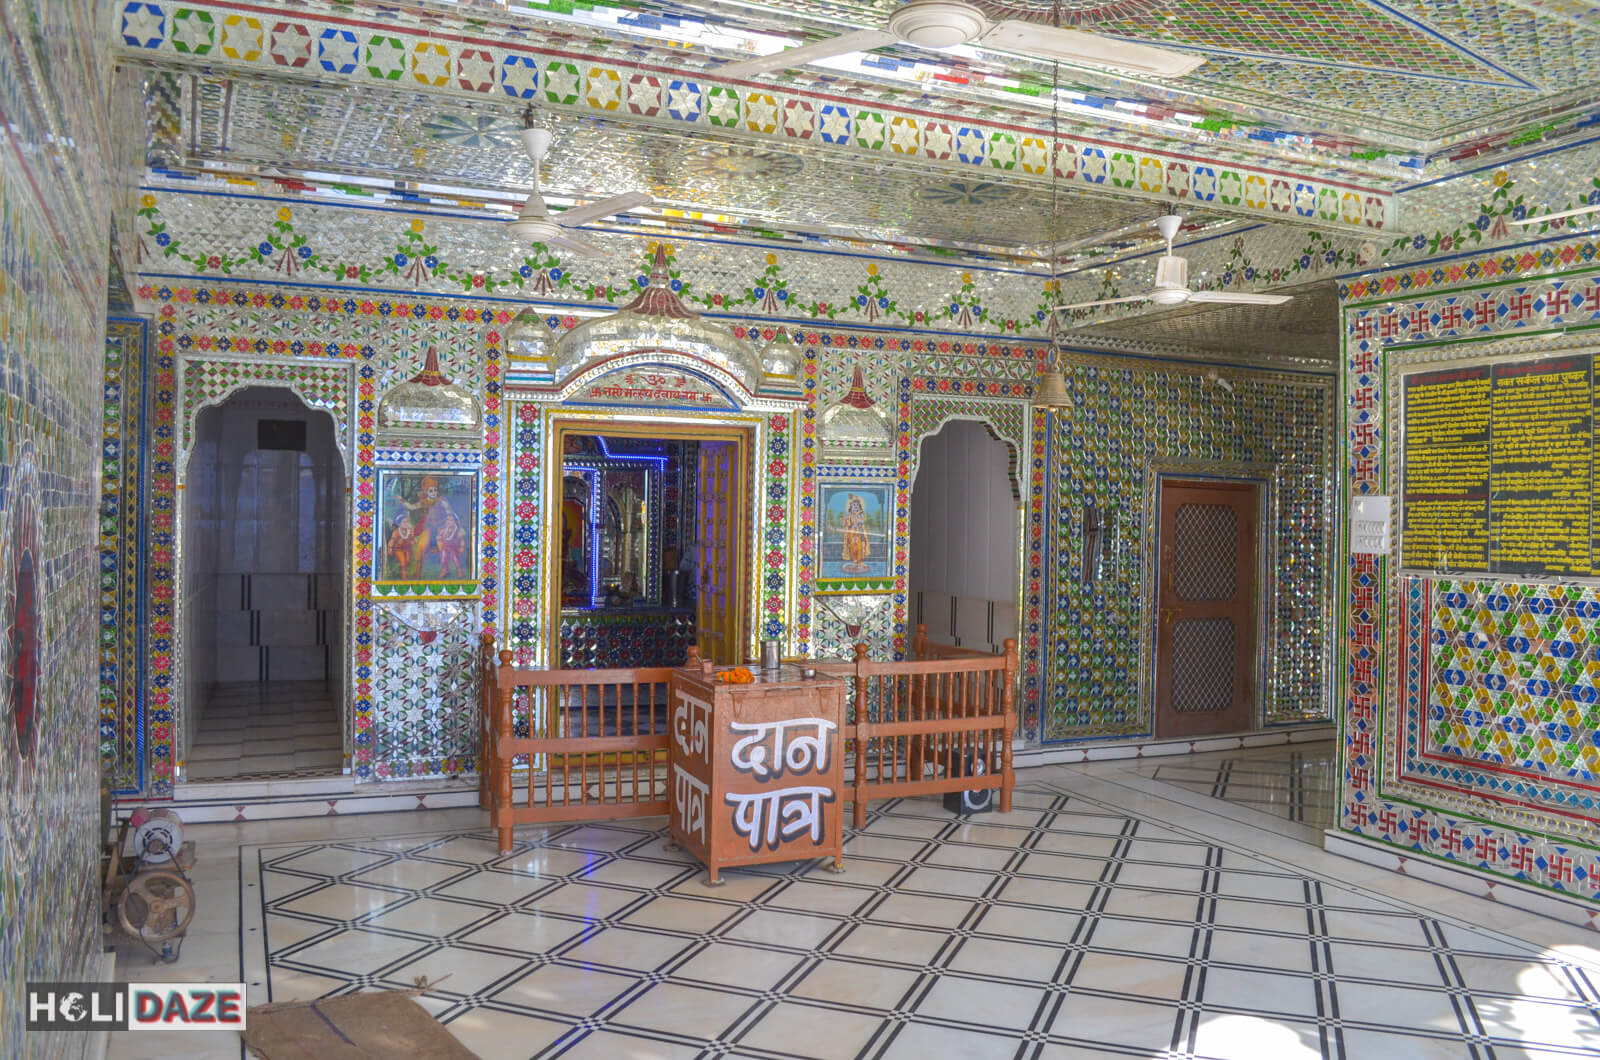 One of a kind mirrored temple in Pushkar, India